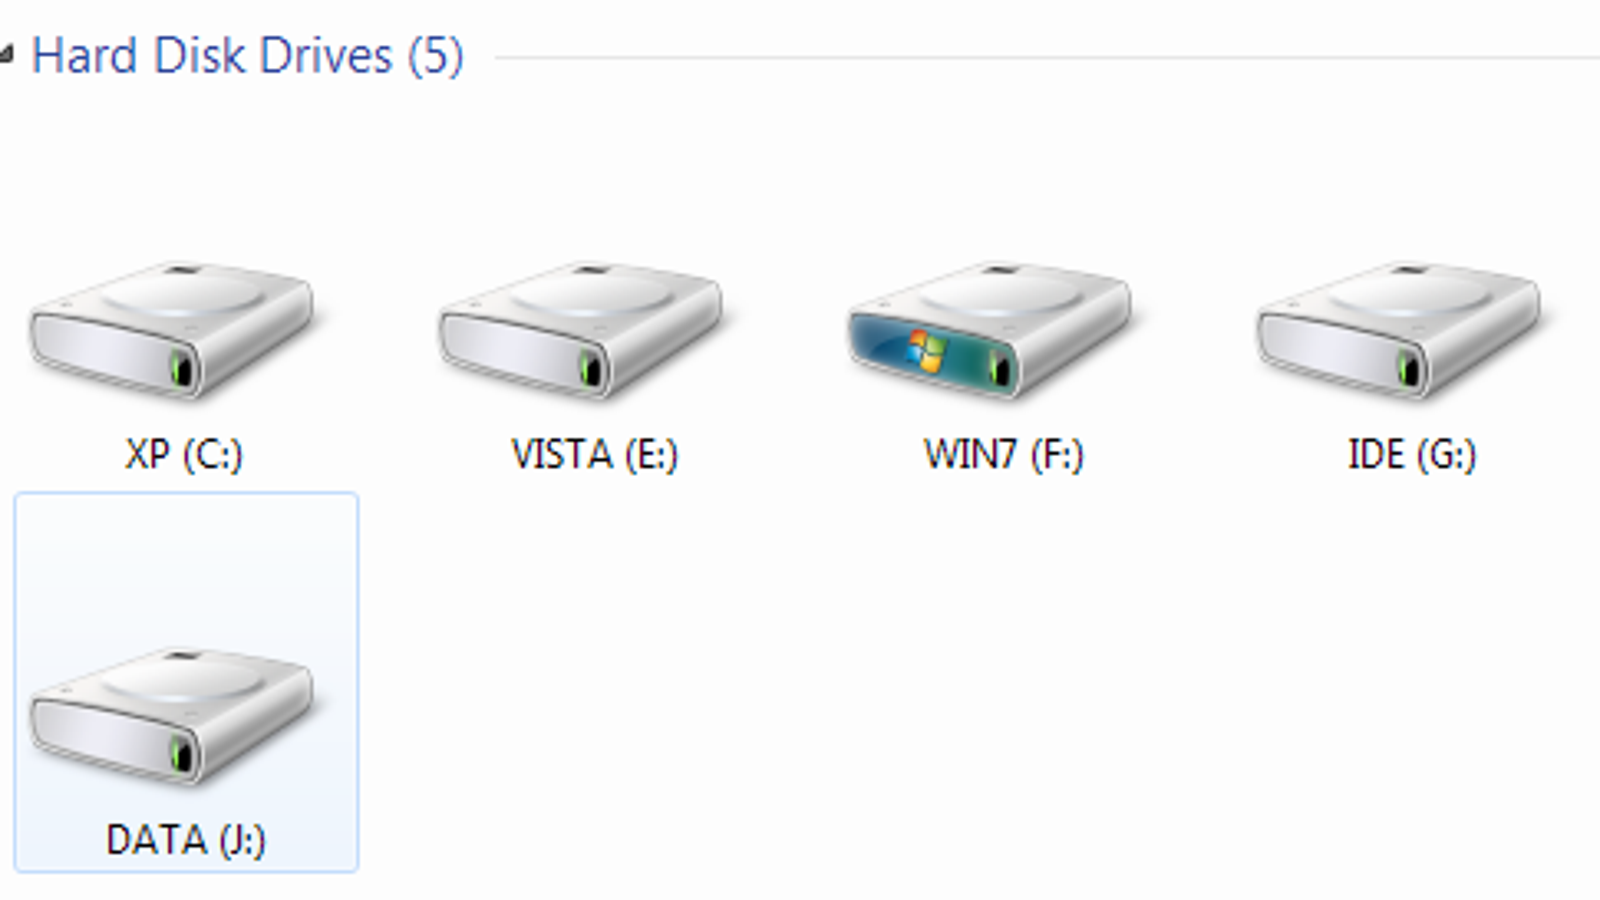 upgrading to windows 7 from vista without losing data